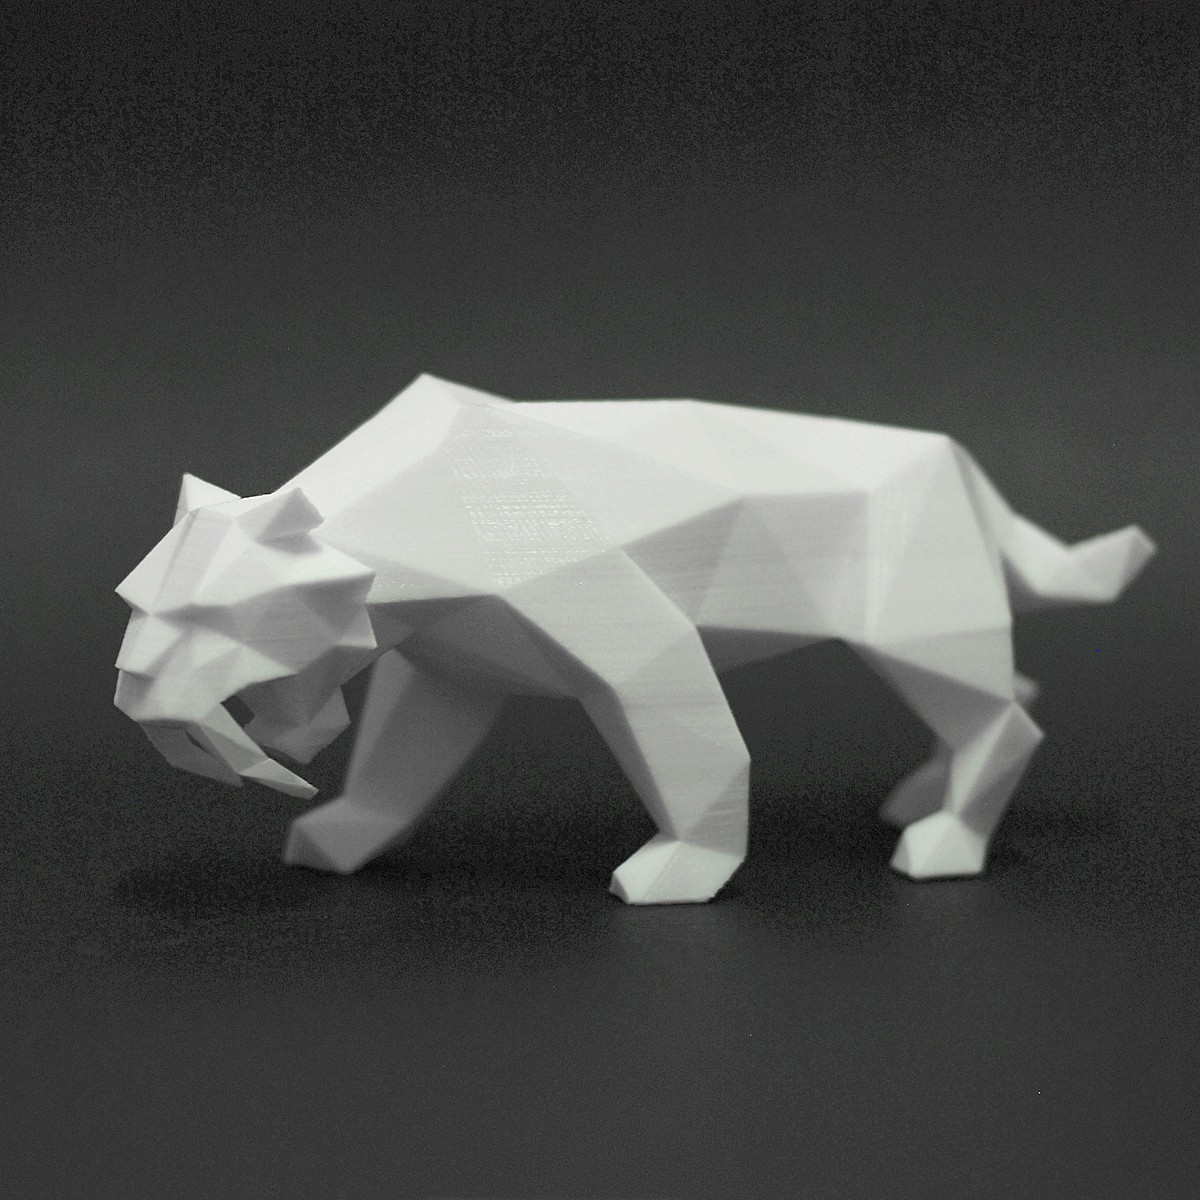 Saber Tiger 1.jpg Download STL file Low Poly Animal Collection • 3D printing template, FORMBYTE